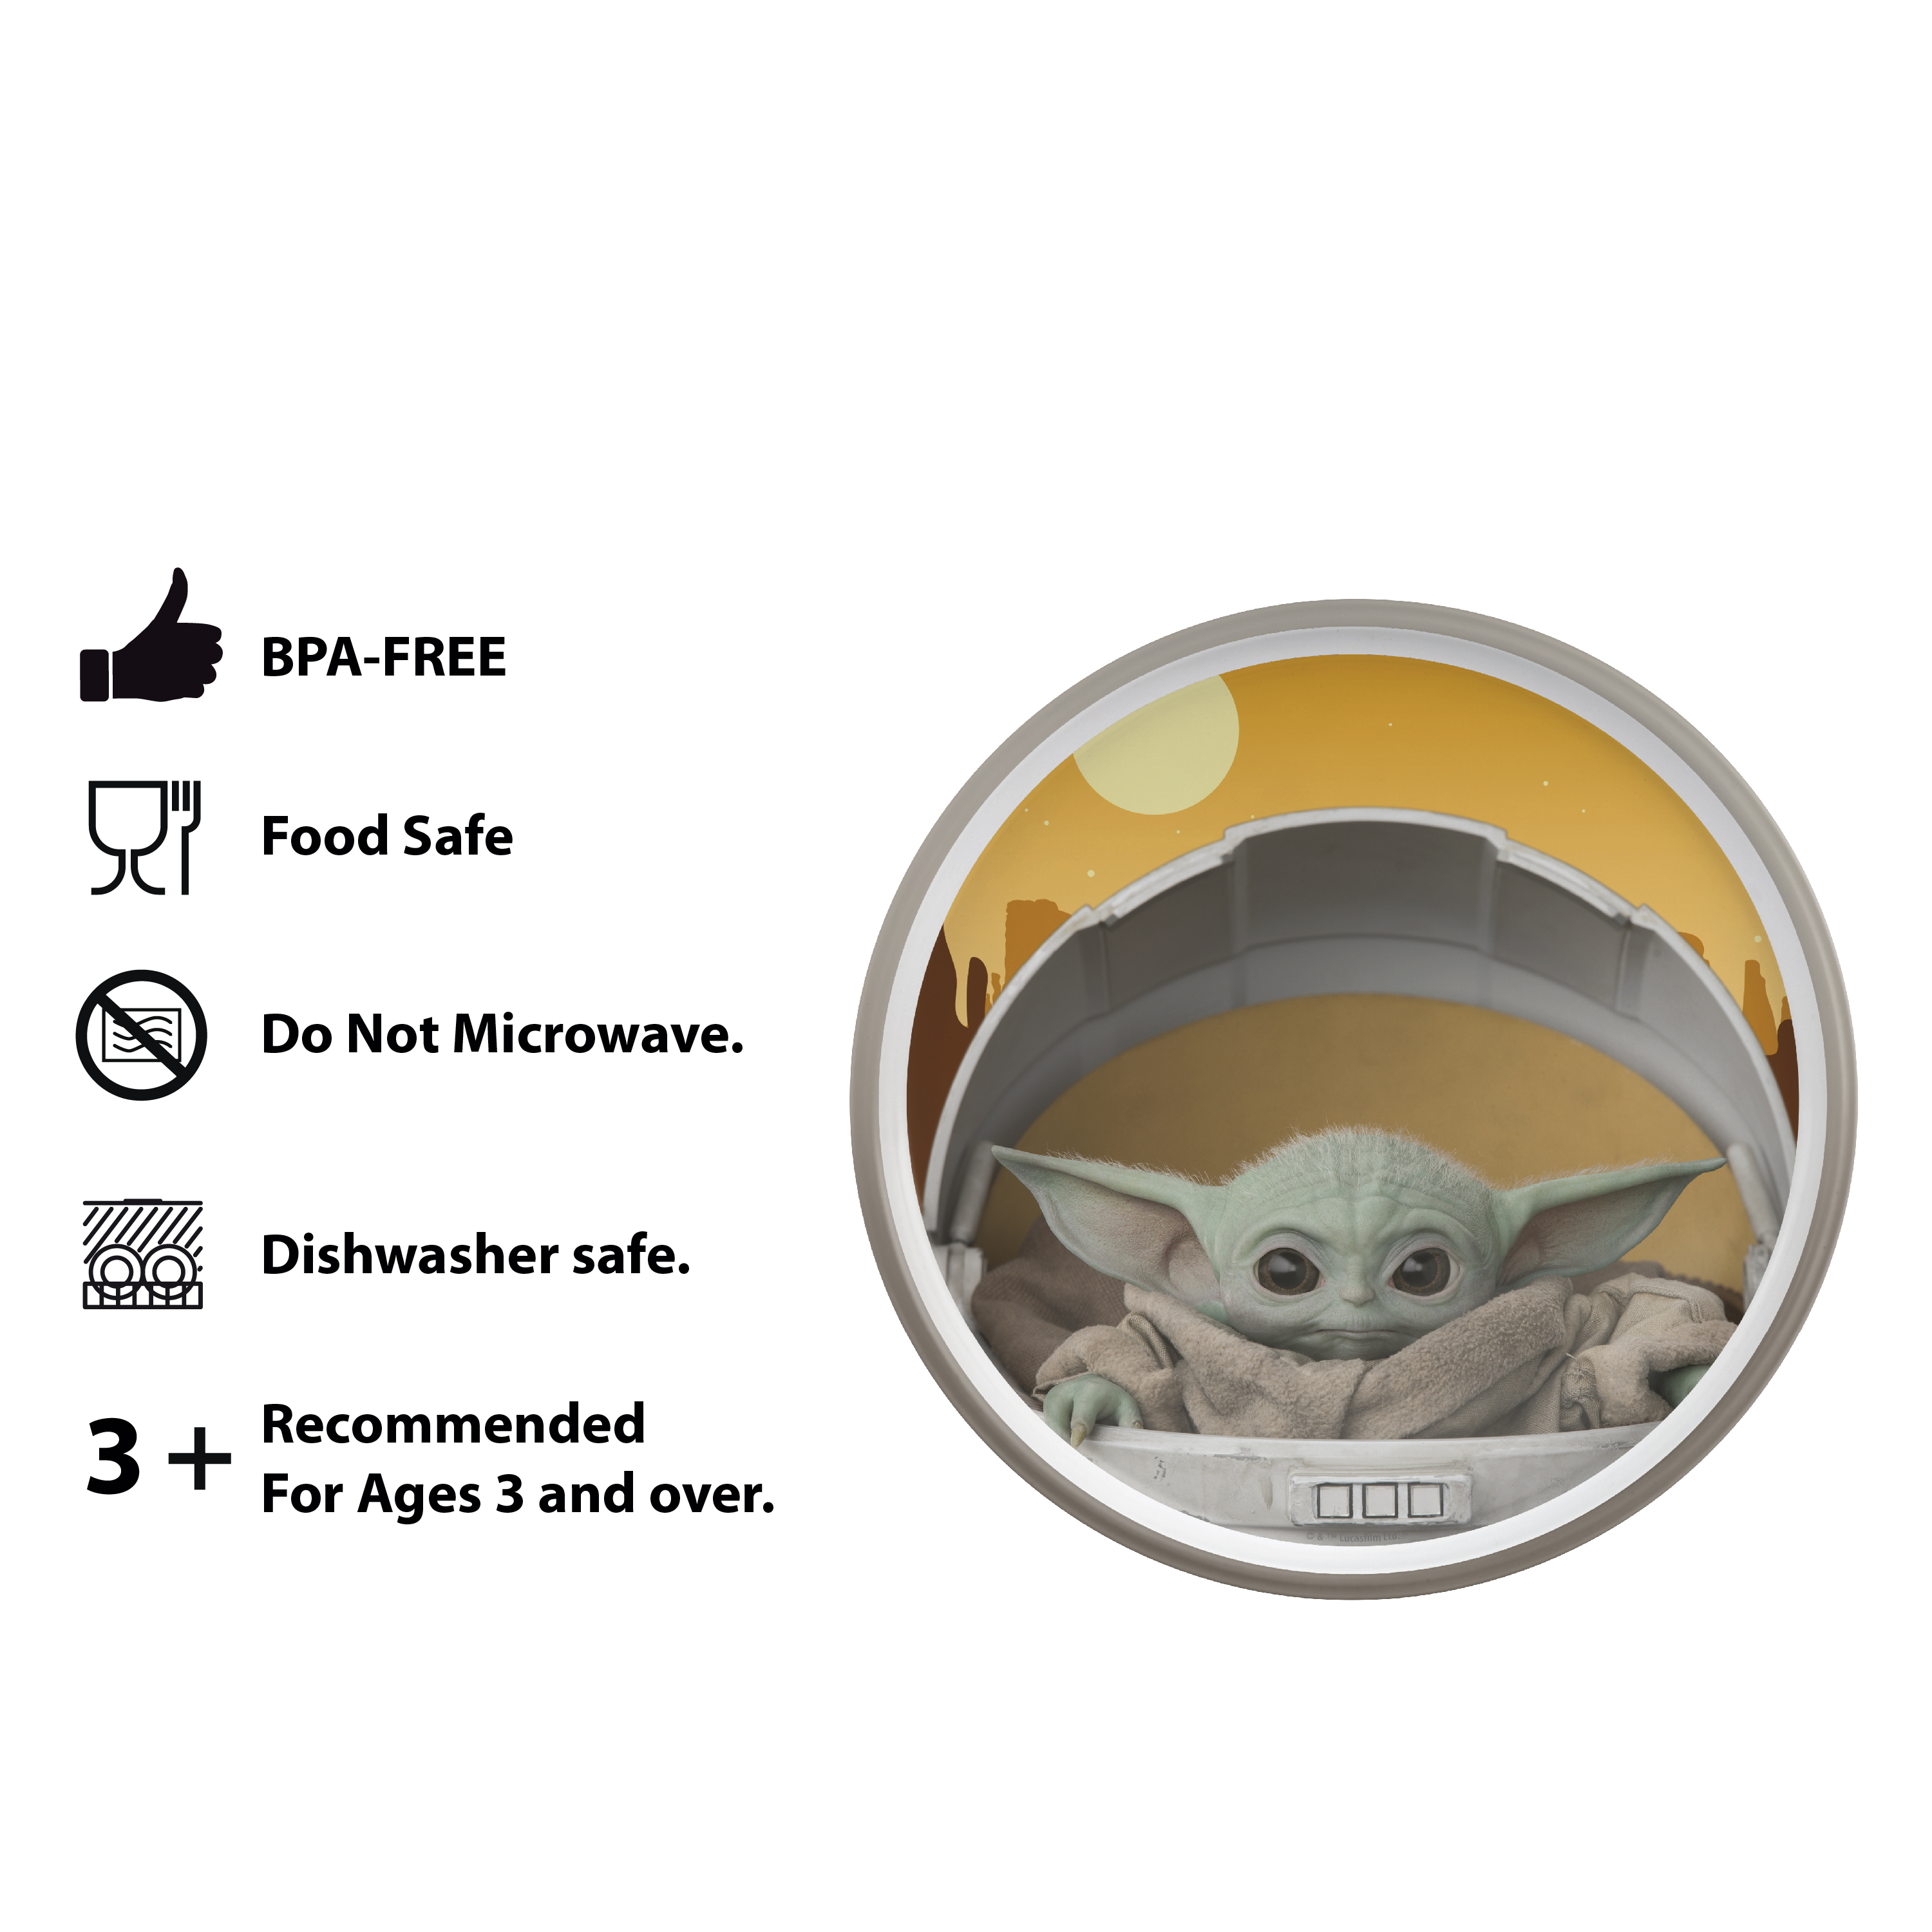 Star Wars: The Mandalorian Kids Dinnerware Set, The Child, 2-piece set slideshow image 7